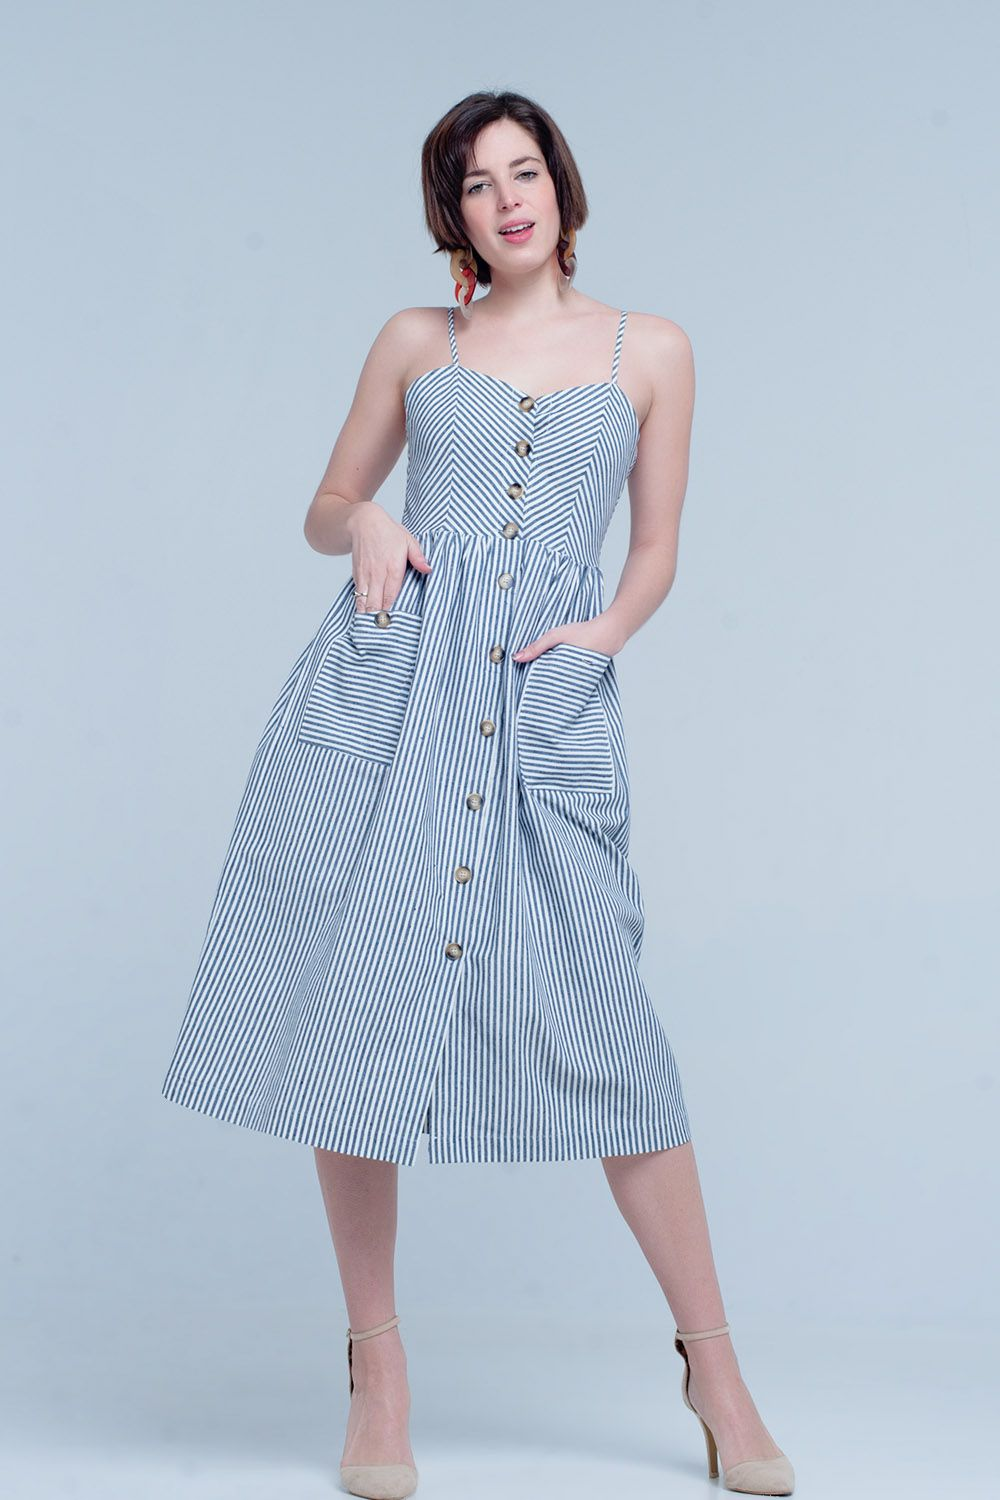 940e17d807d Striped blue and white midi dress made of comfortable cotton